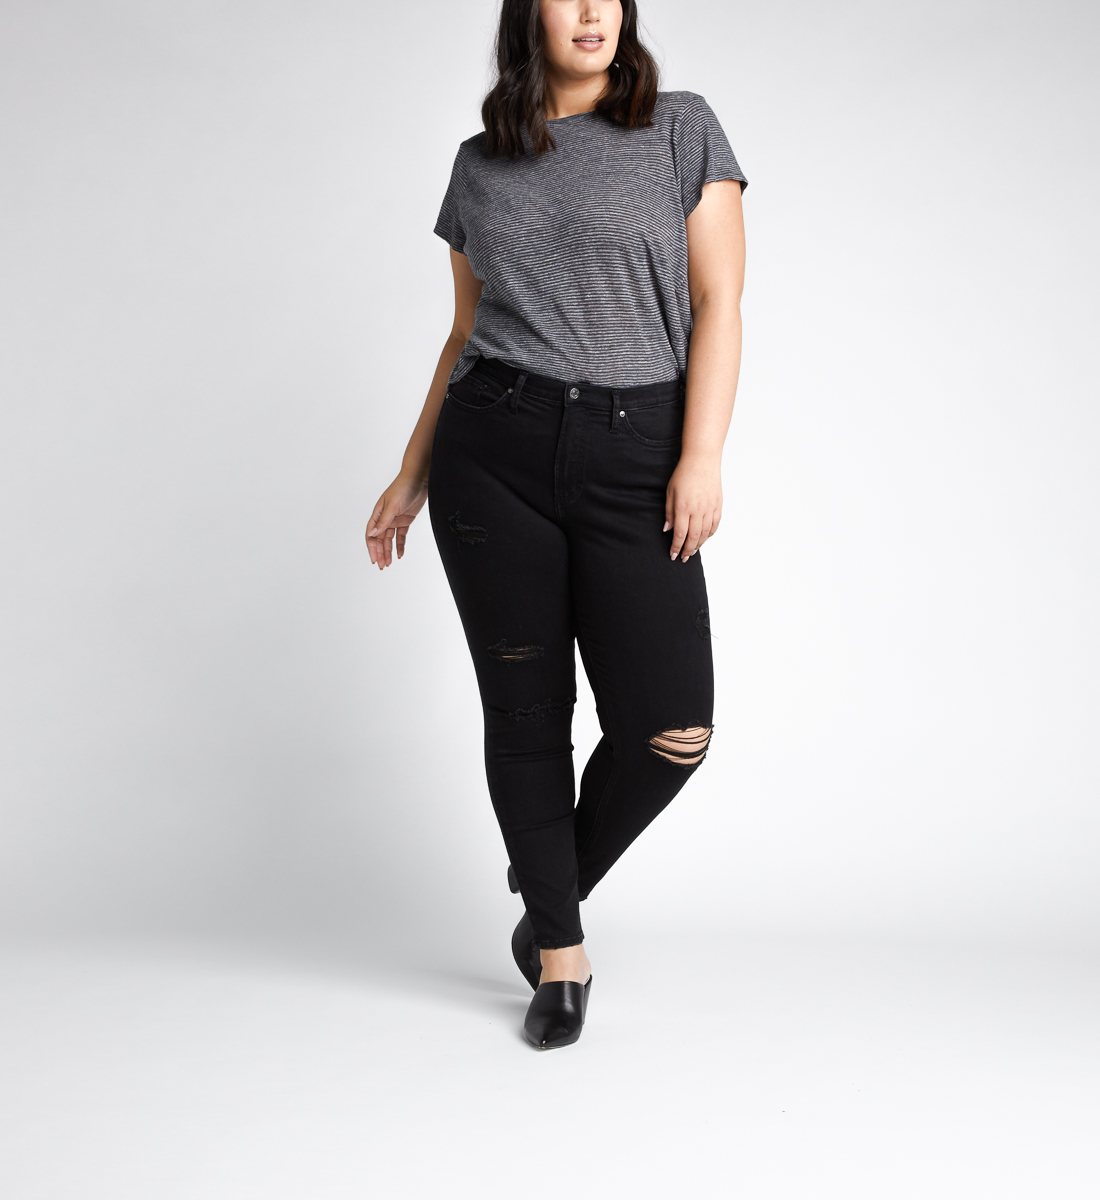 Calley High Rise Skinny Leg Jeans Plus Size,Black Front